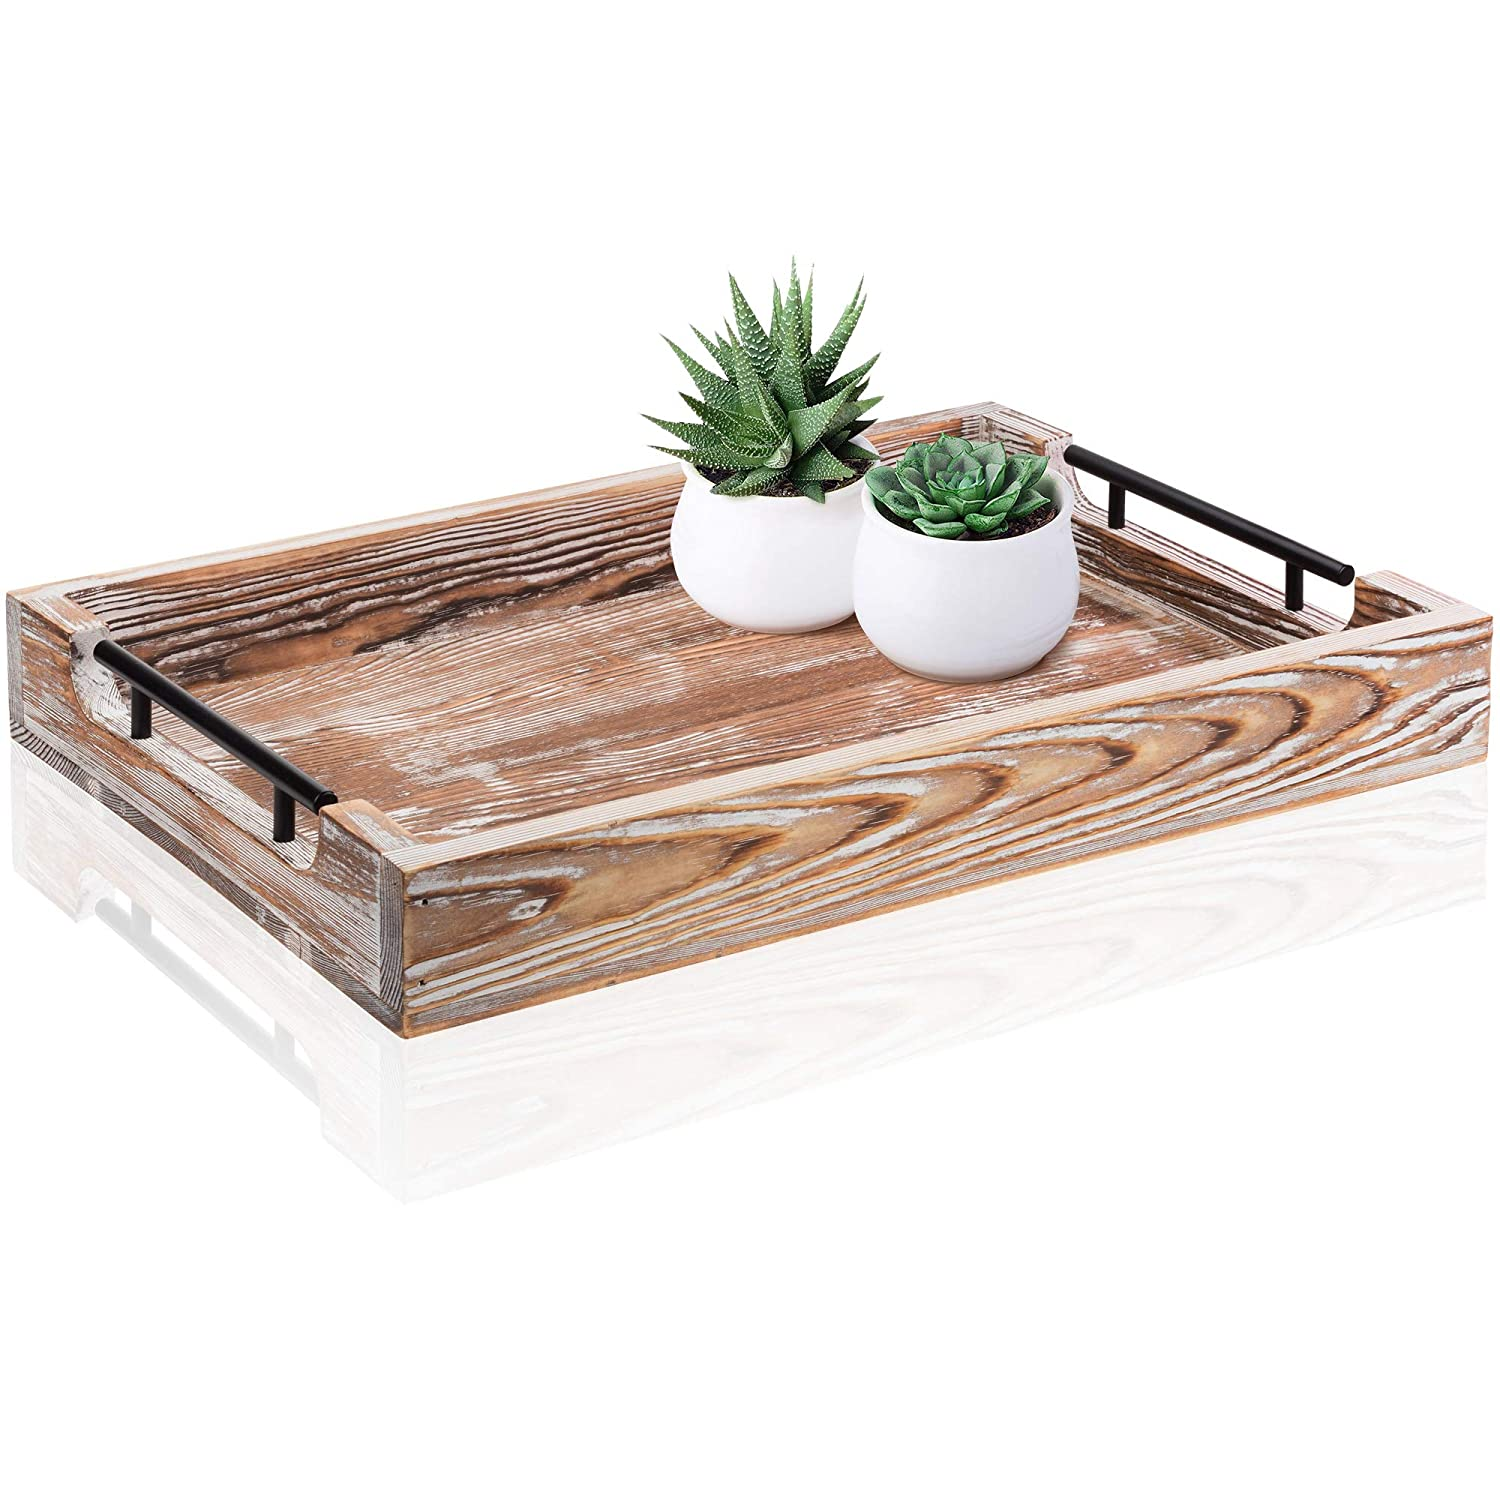 Excellent Large Ottoman Tray With Handles 20X14 Coffee Table Tray Rustic Tray For Ottoman Wooden Trays For Coffee Table Wooden Serving Trays For Download Free Architecture Designs Grimeyleaguecom